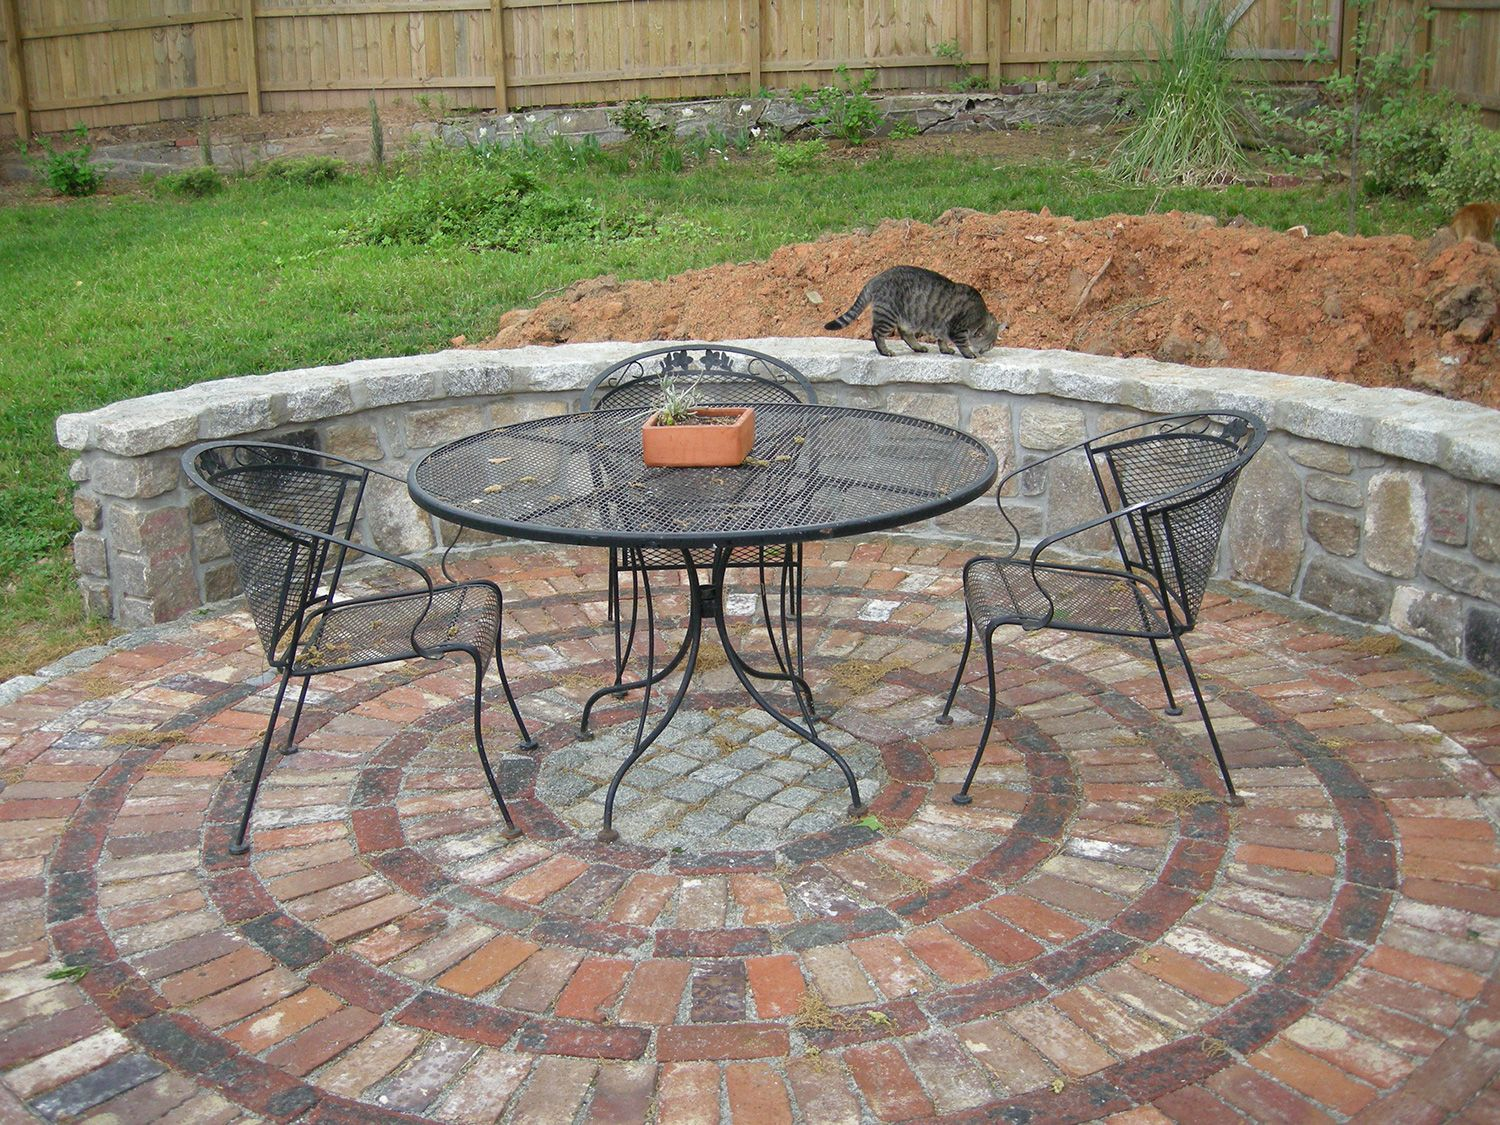 Reclaimed Brick Patio Ideas Menards Circular Patio Paver Kits Perennial  Shade Garden Design Small Round Brick Patio